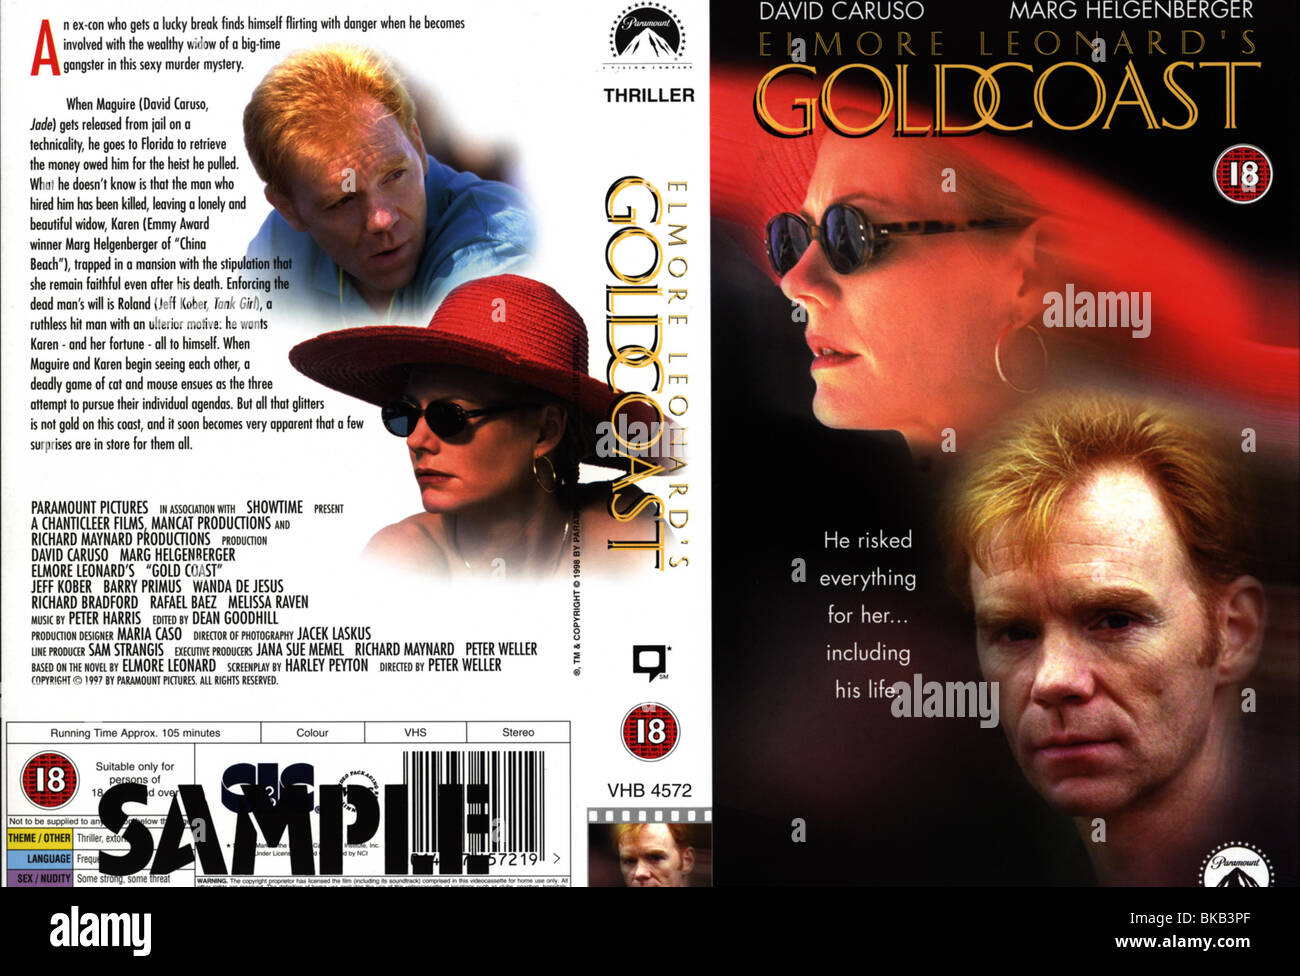 GOLDCOAST (1997) MARG HELGENBERGER, DAVID CARUSO GOST 001VS Stock Photo